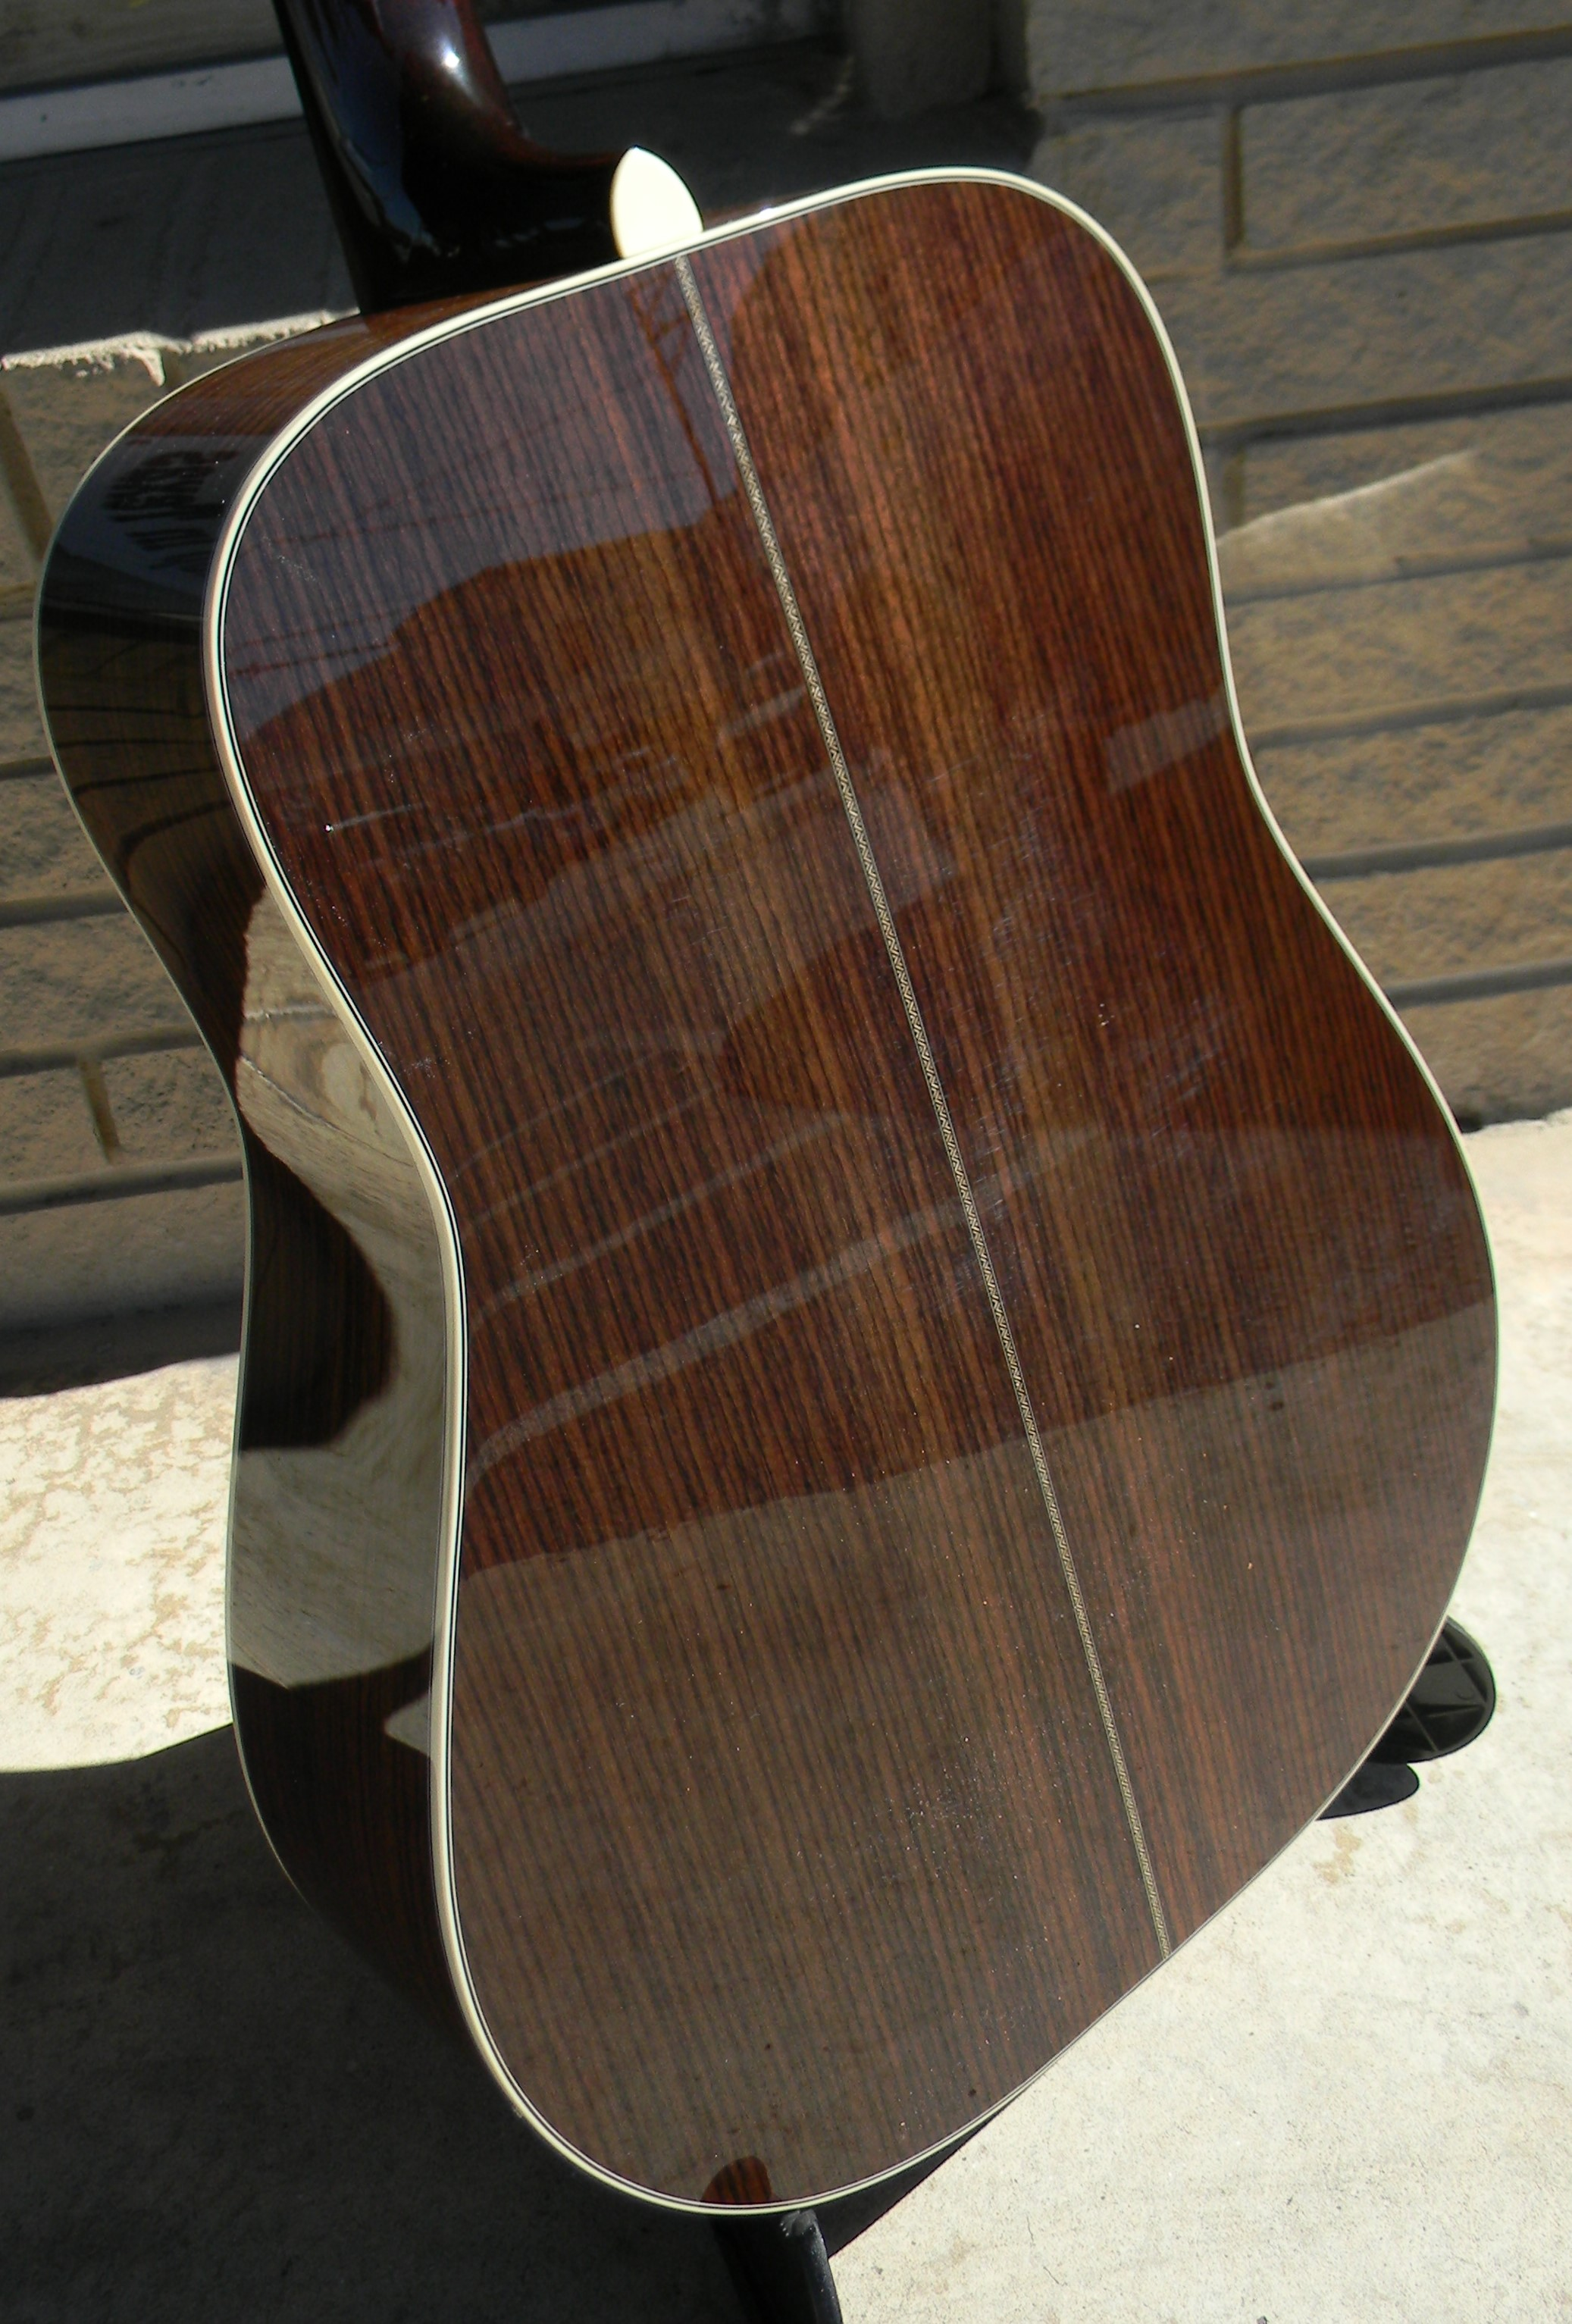 Huss & Dalton TDR with torrefied Adirondack spruce top is a superlative dreadnought. Loud, rich, and complex.